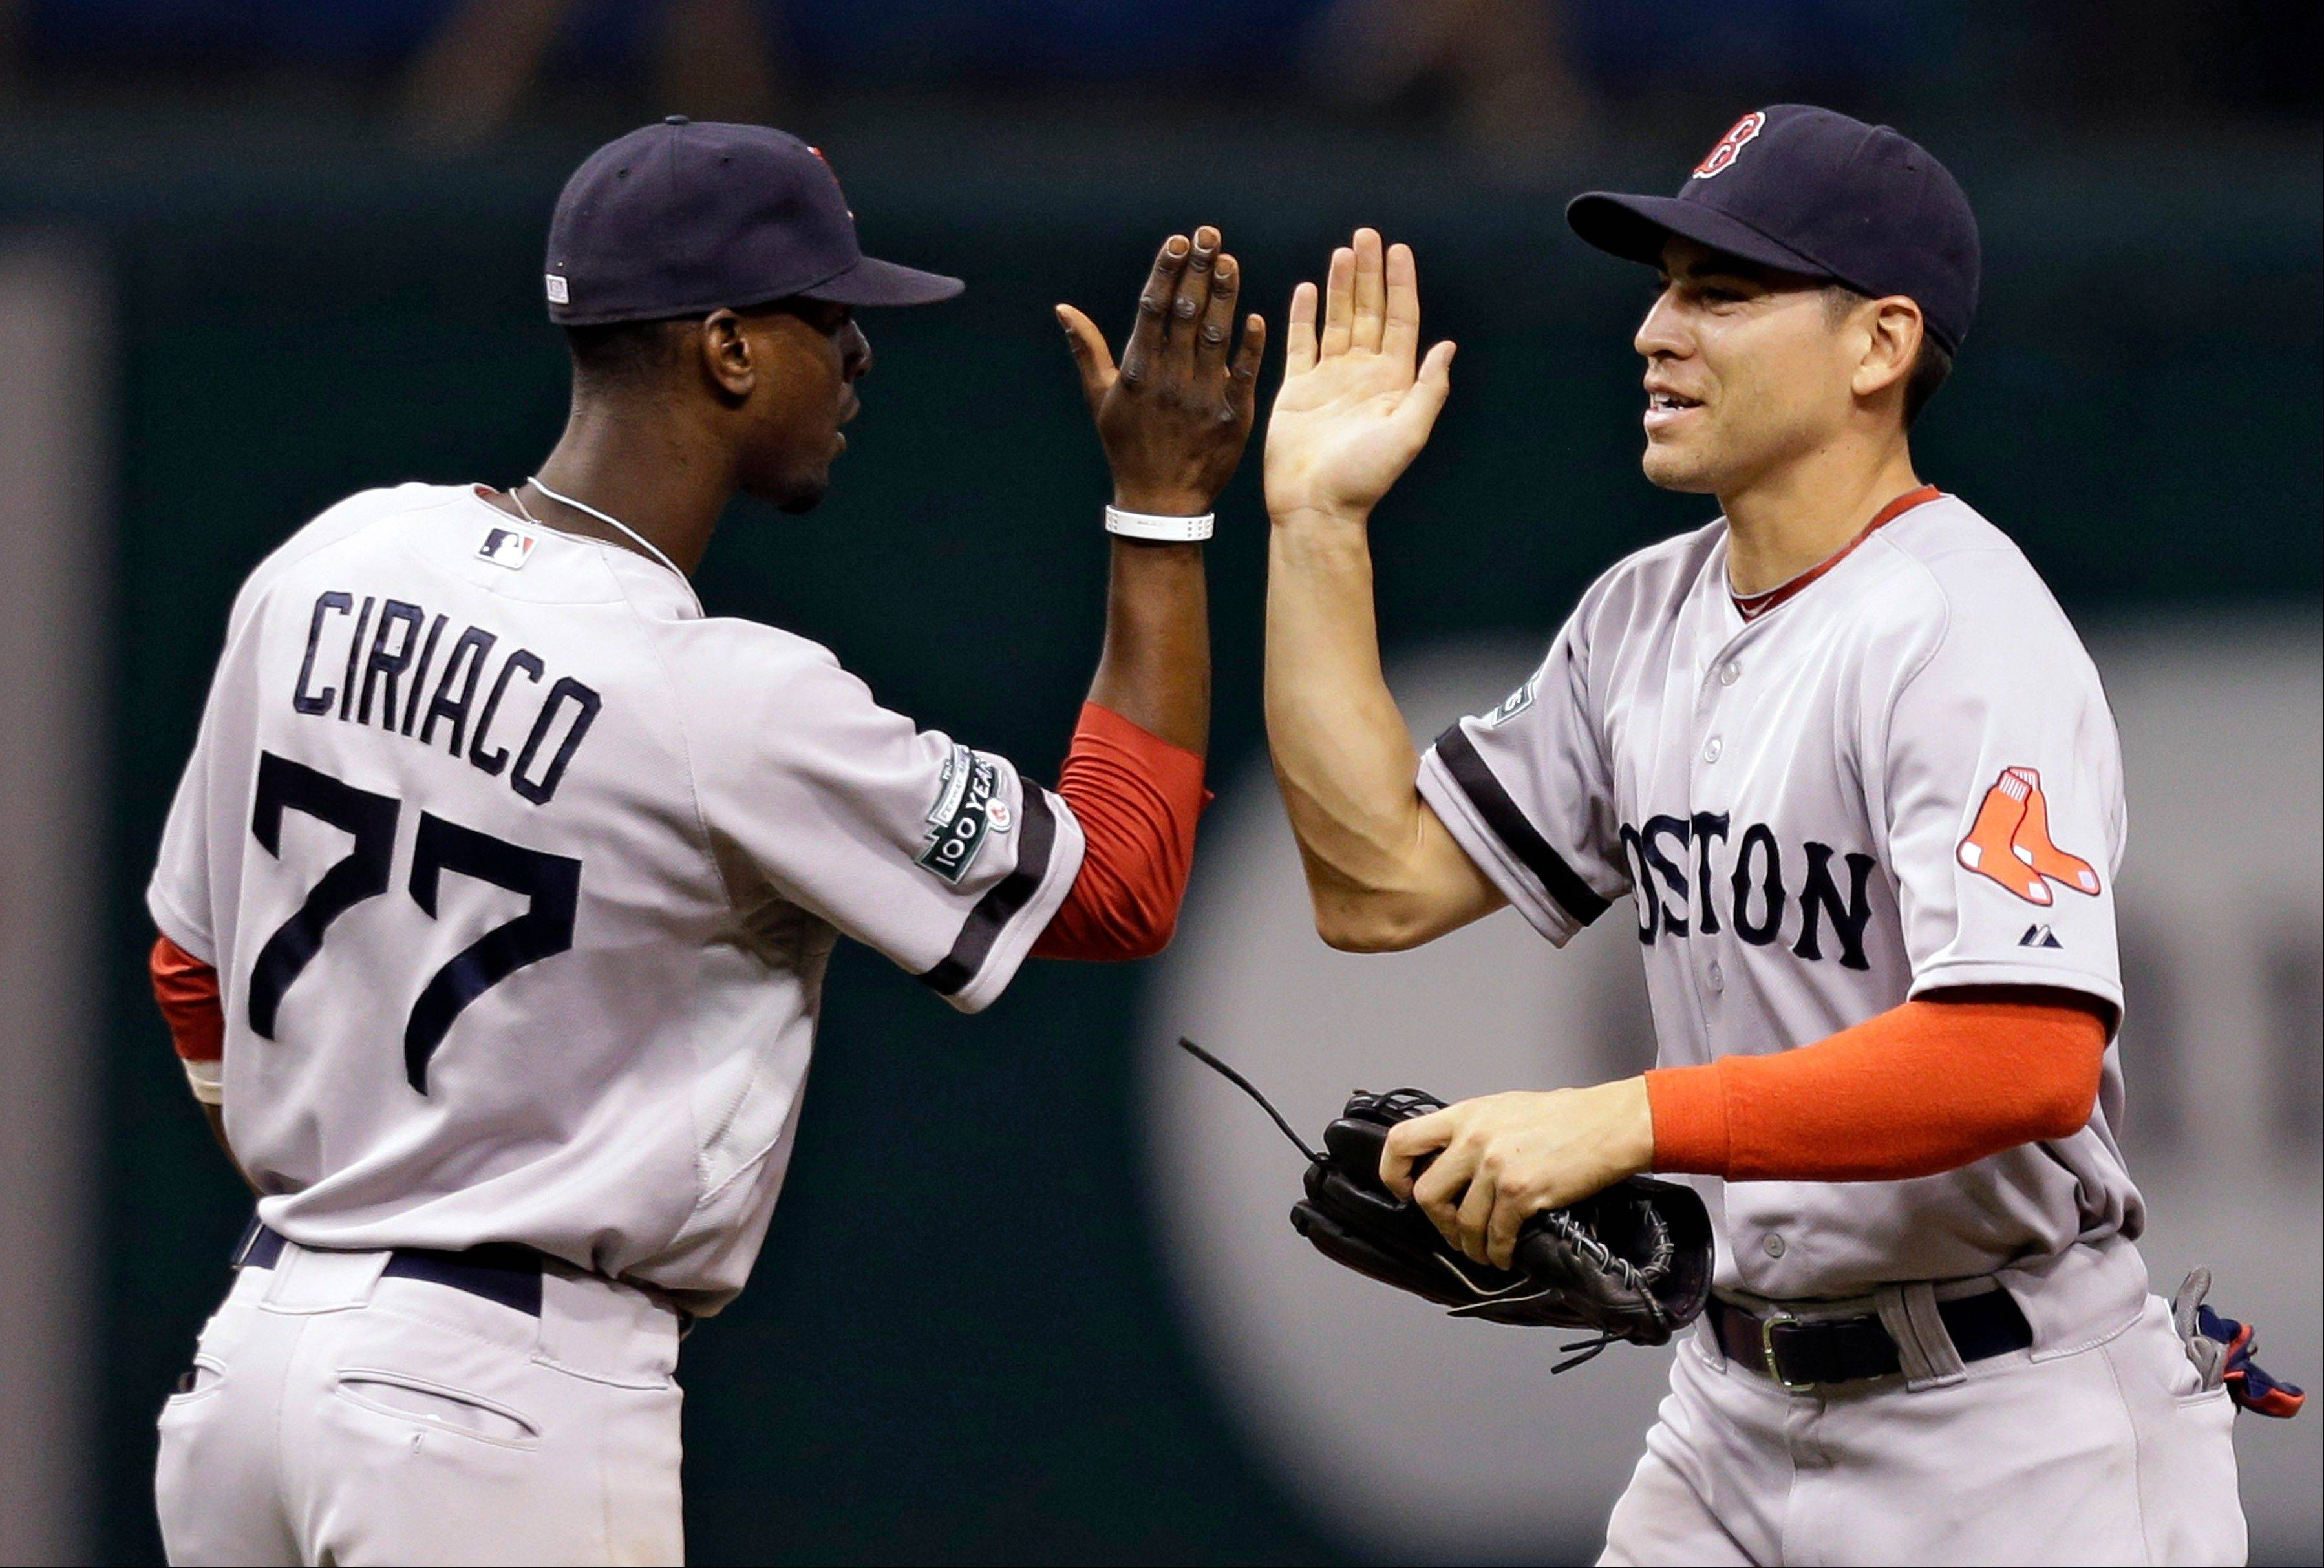 Boston's Jacoby Ellsbury, right, high-fives teammate Pedro Ciriaco after the Red Sox defeated the Tampa Bay Rays 5-2 on Monday in St. Petersburg, Fla.